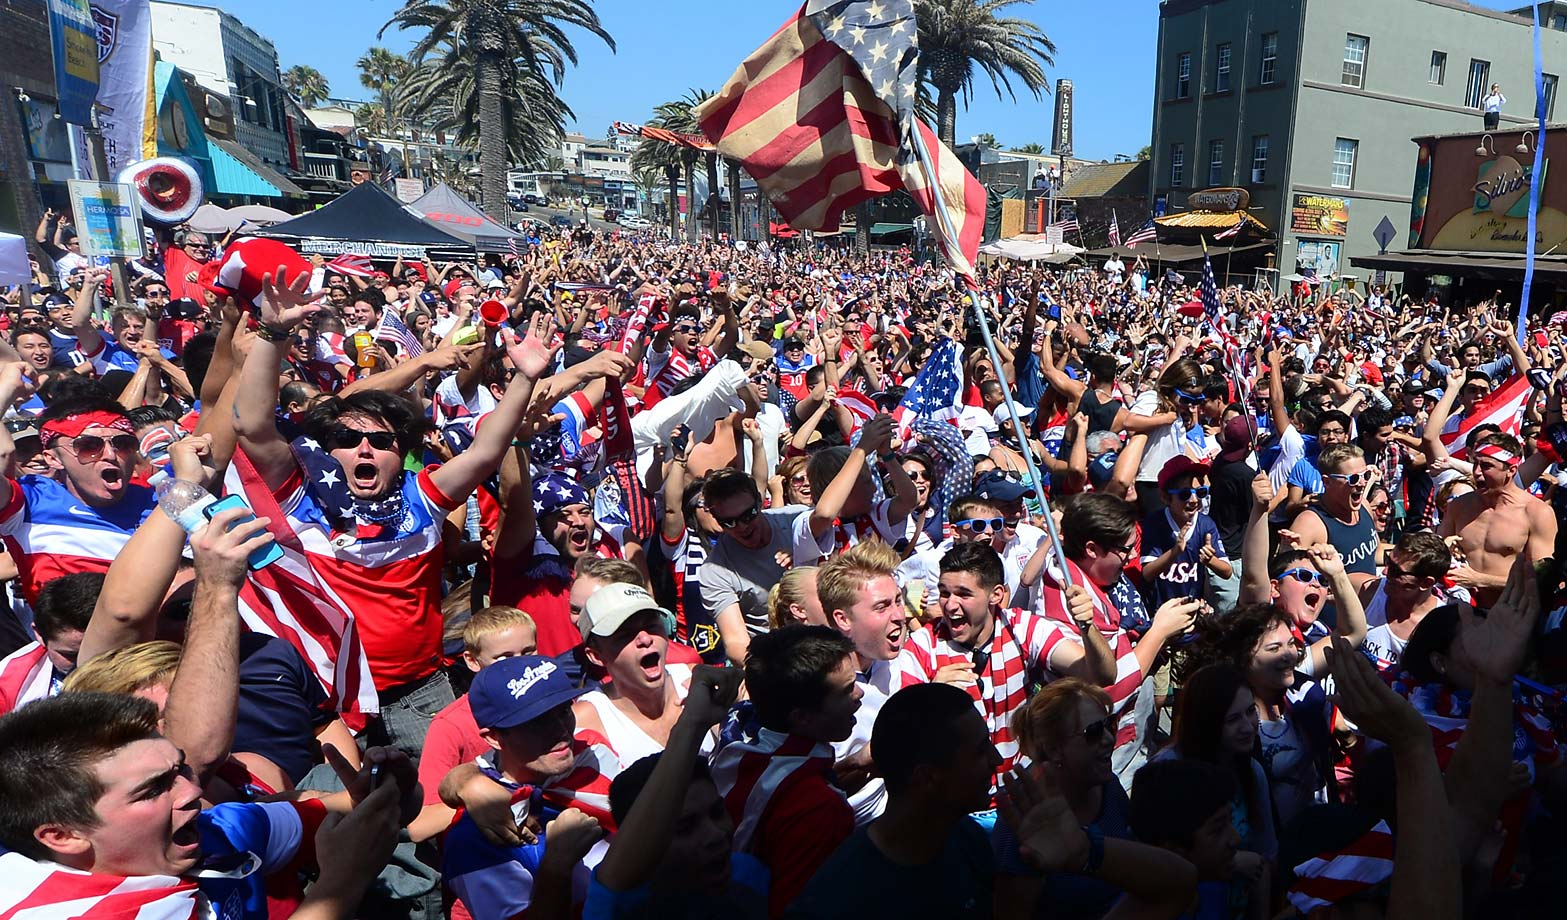 U.S. fans across the globe were overjoyed with the victory, including those in Hermosa Beach, Calif.